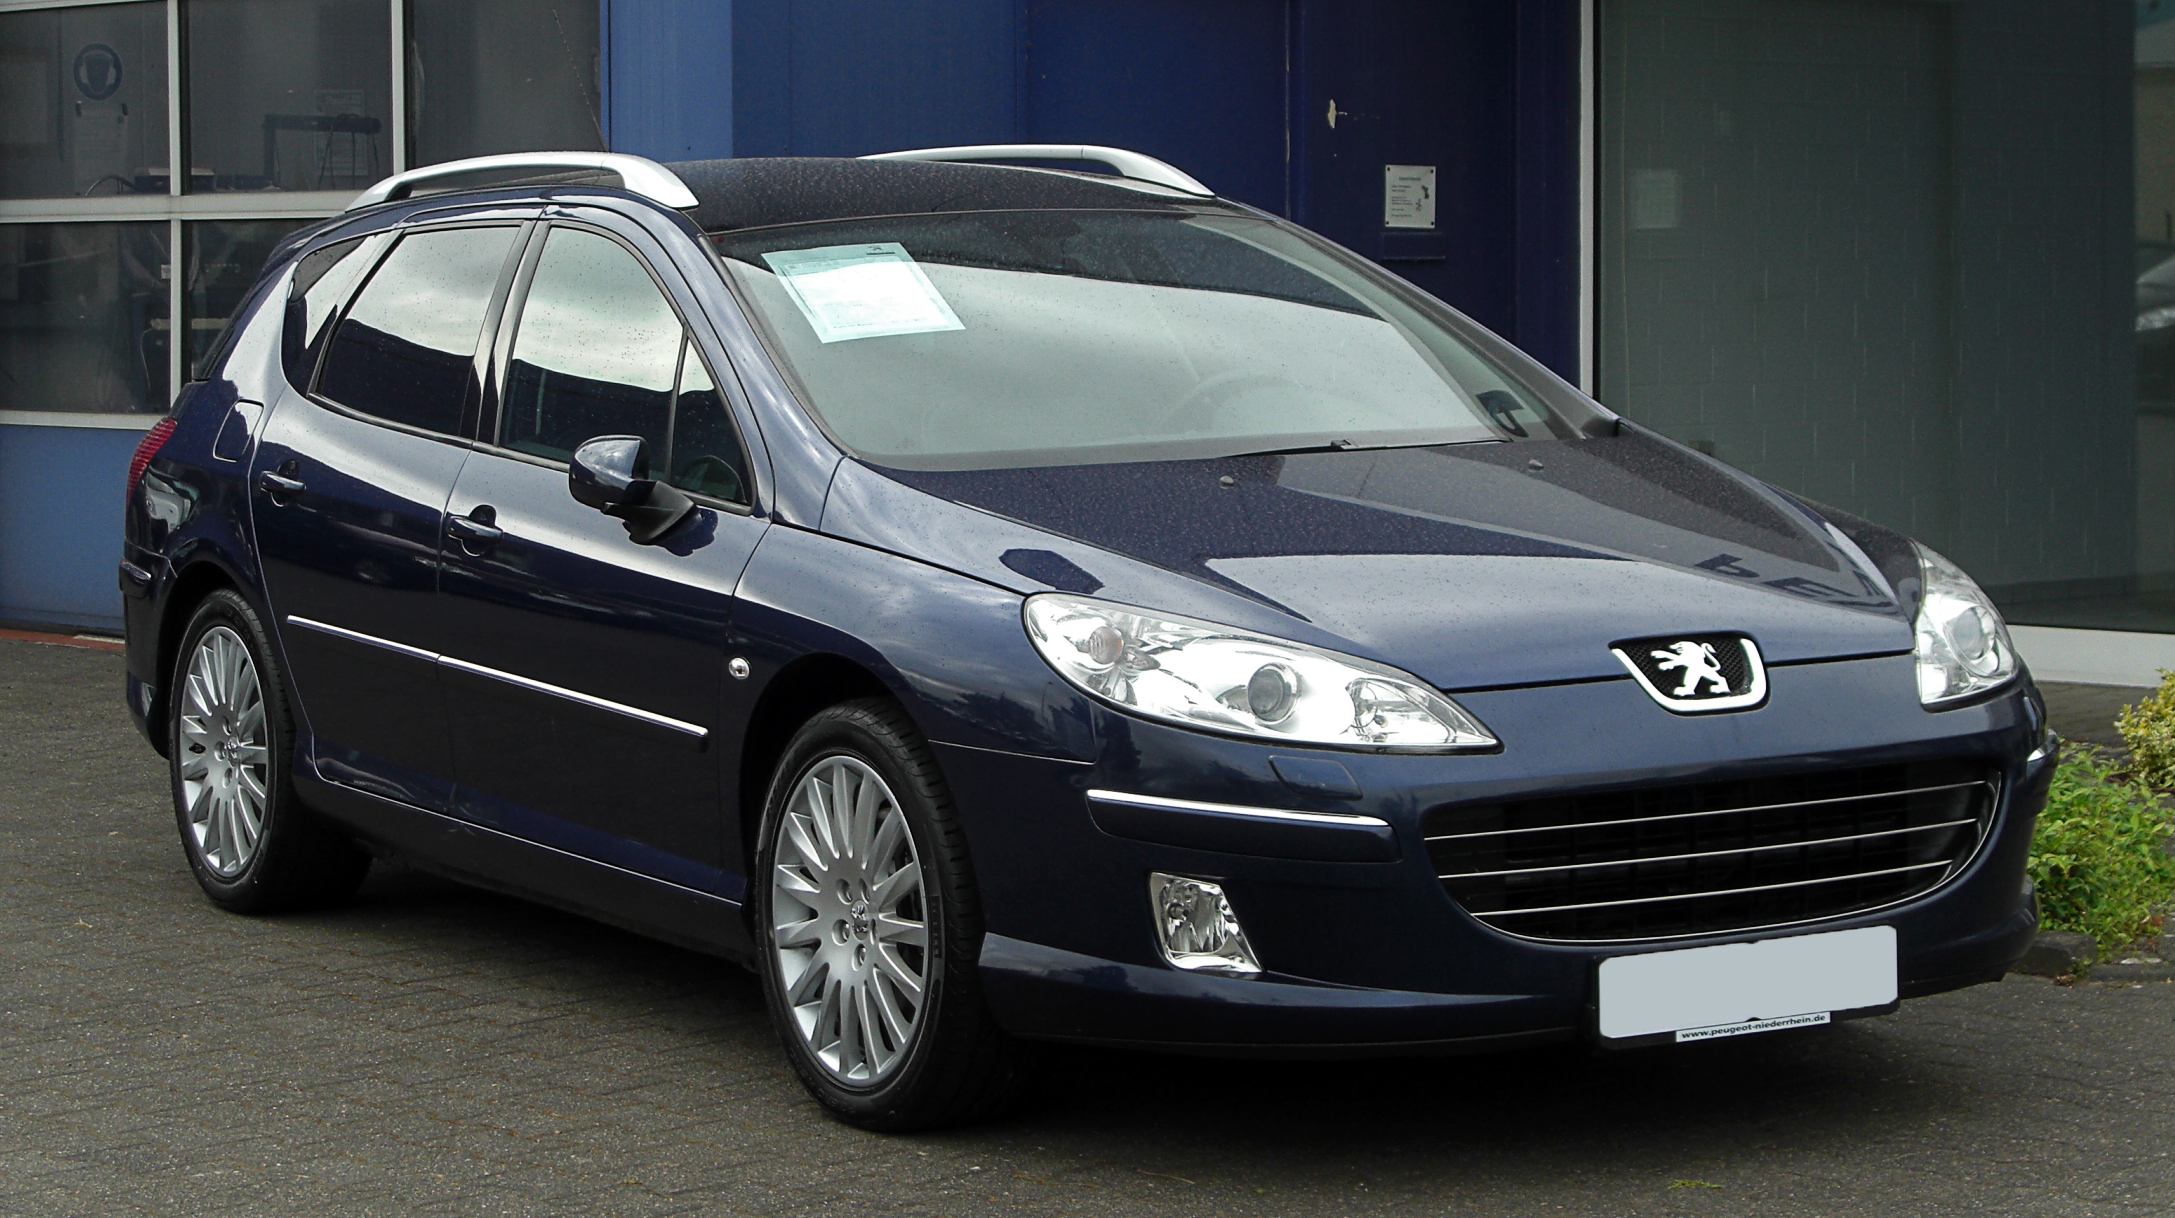 2007 Peugeot 407 Sw 2 7 V6 Hdi Related Infomation